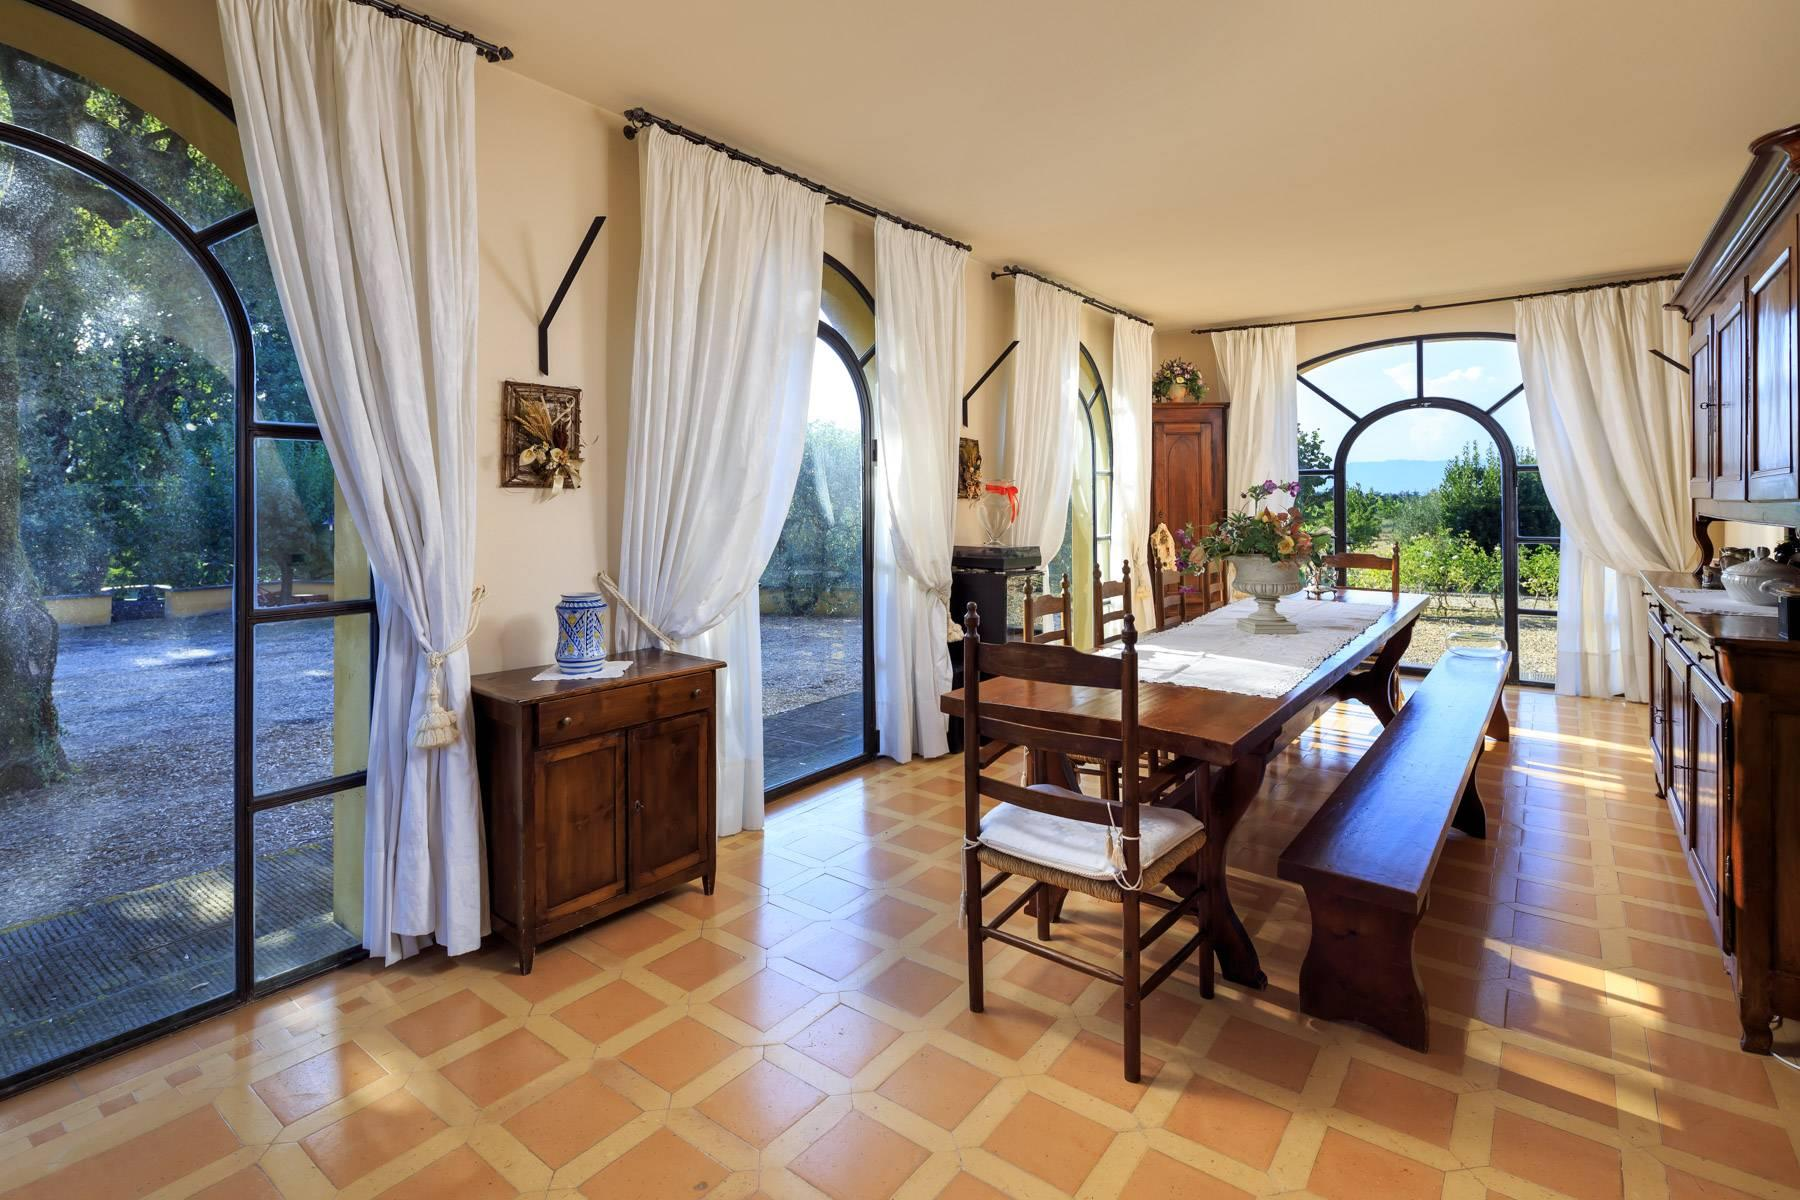 Luxury villa between Pisa and Florence - 10